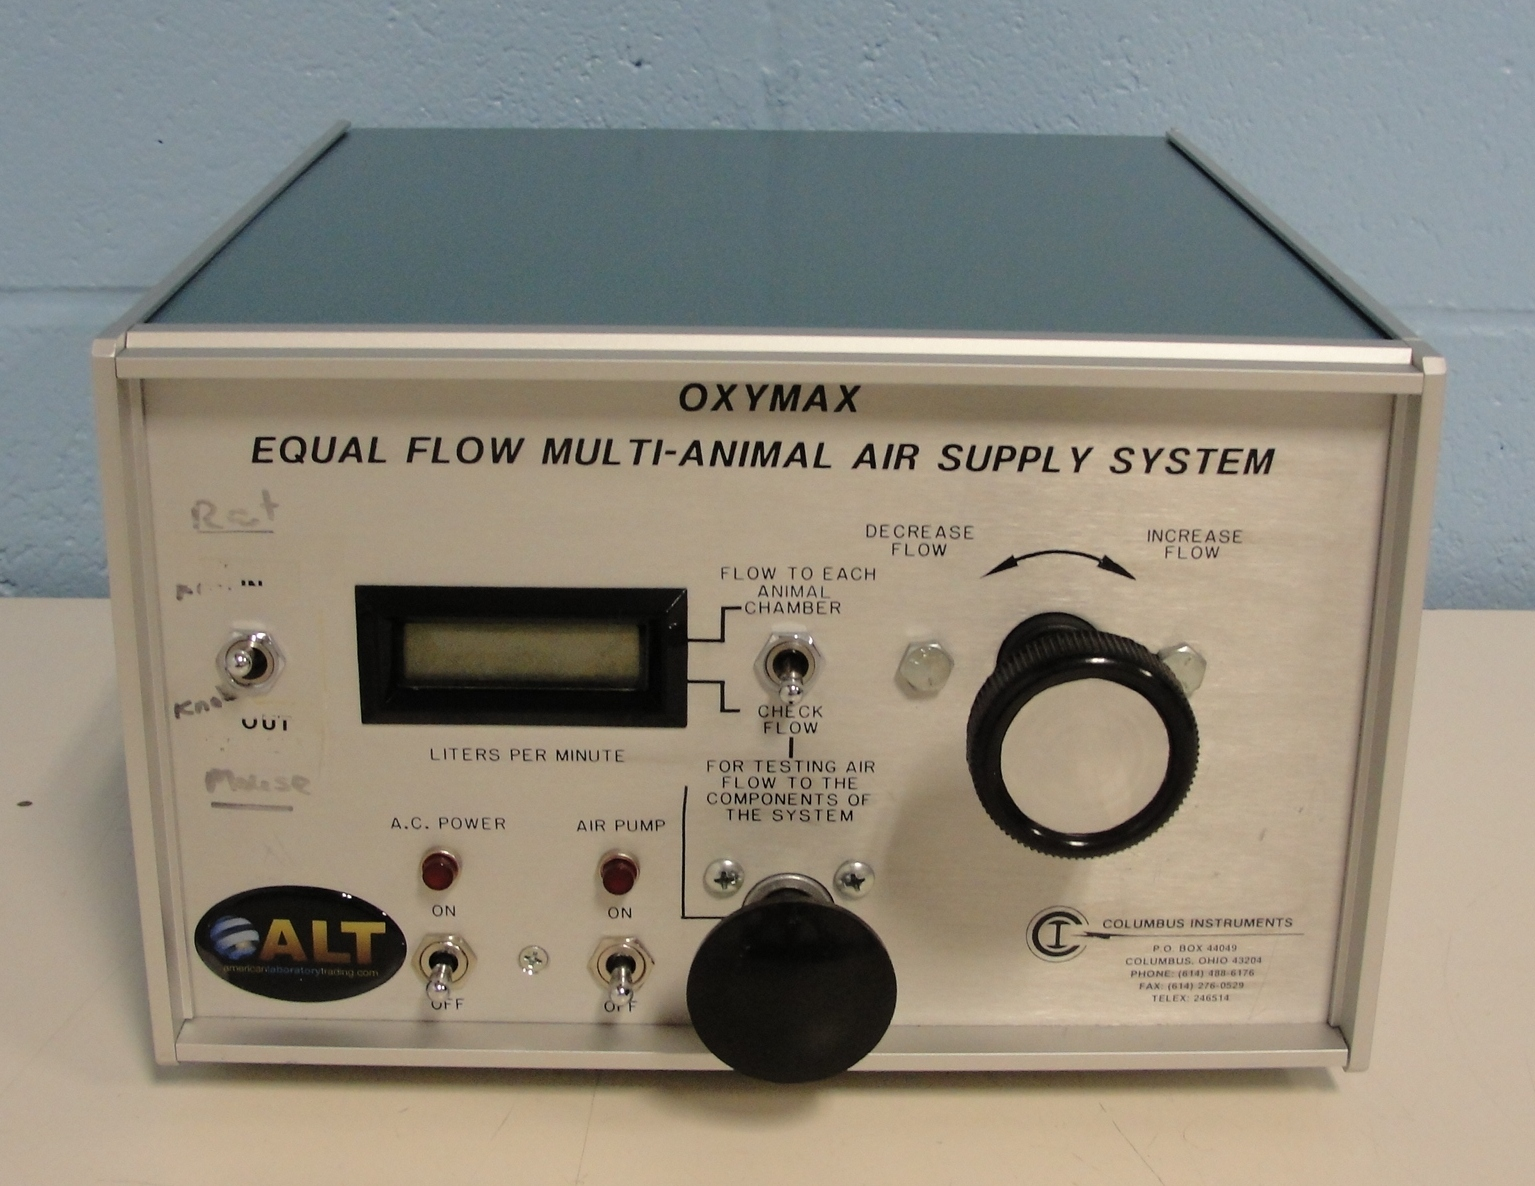 Columbus Instruments OXYMAX Equal Flow Multi-Animal Air Supply System Image